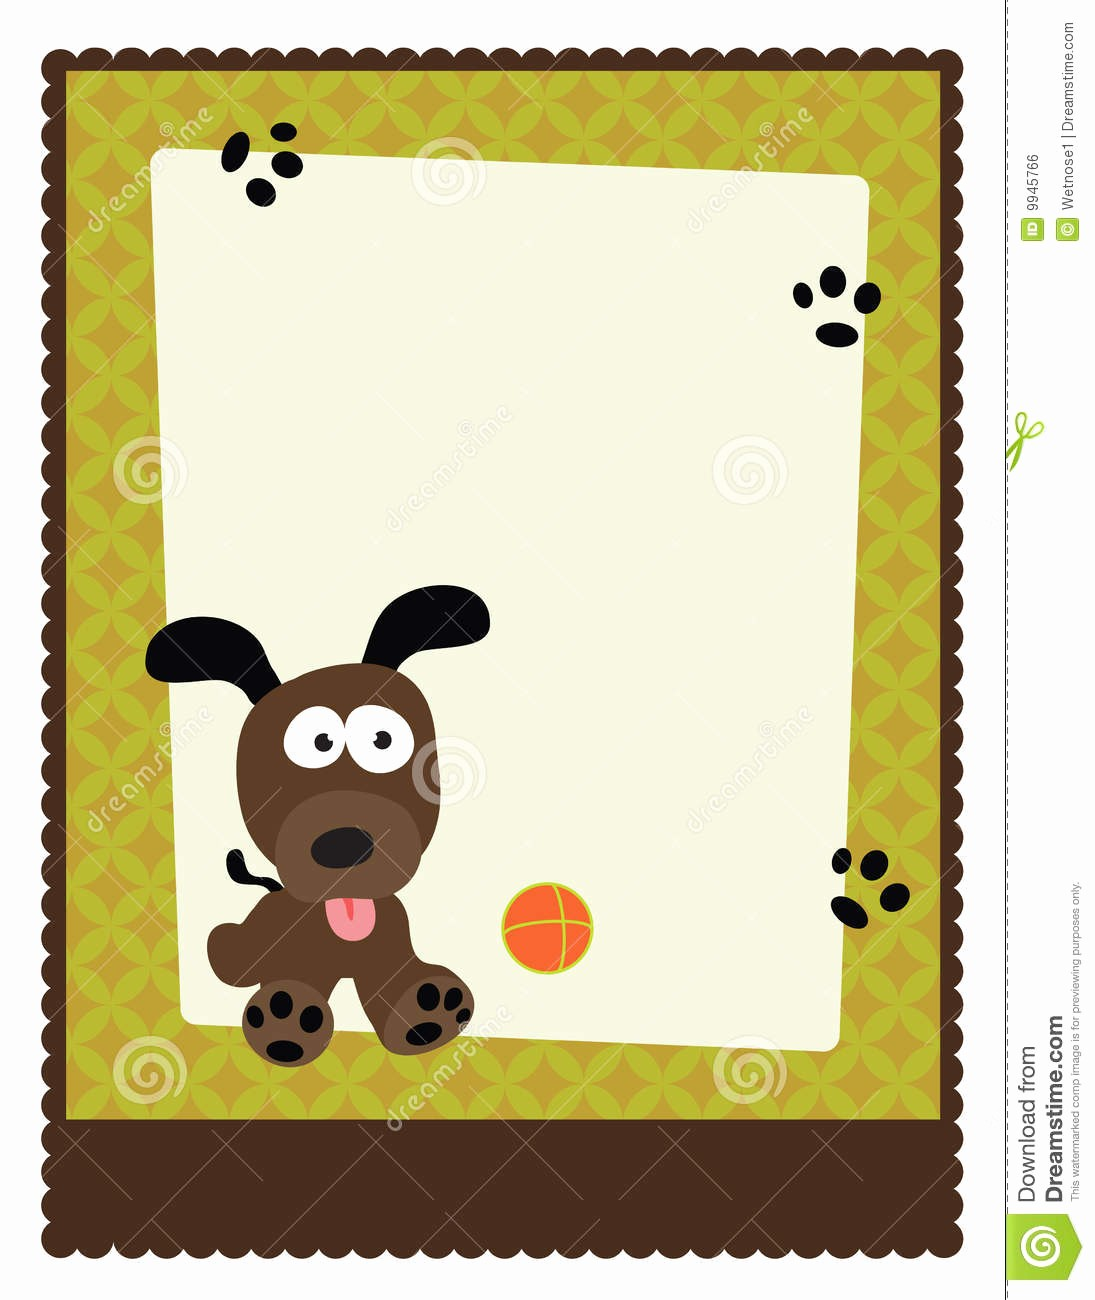 Puppies for Sale Flyer Template Fresh 8 5x11 Flyer Poster Template Stock Vector Image